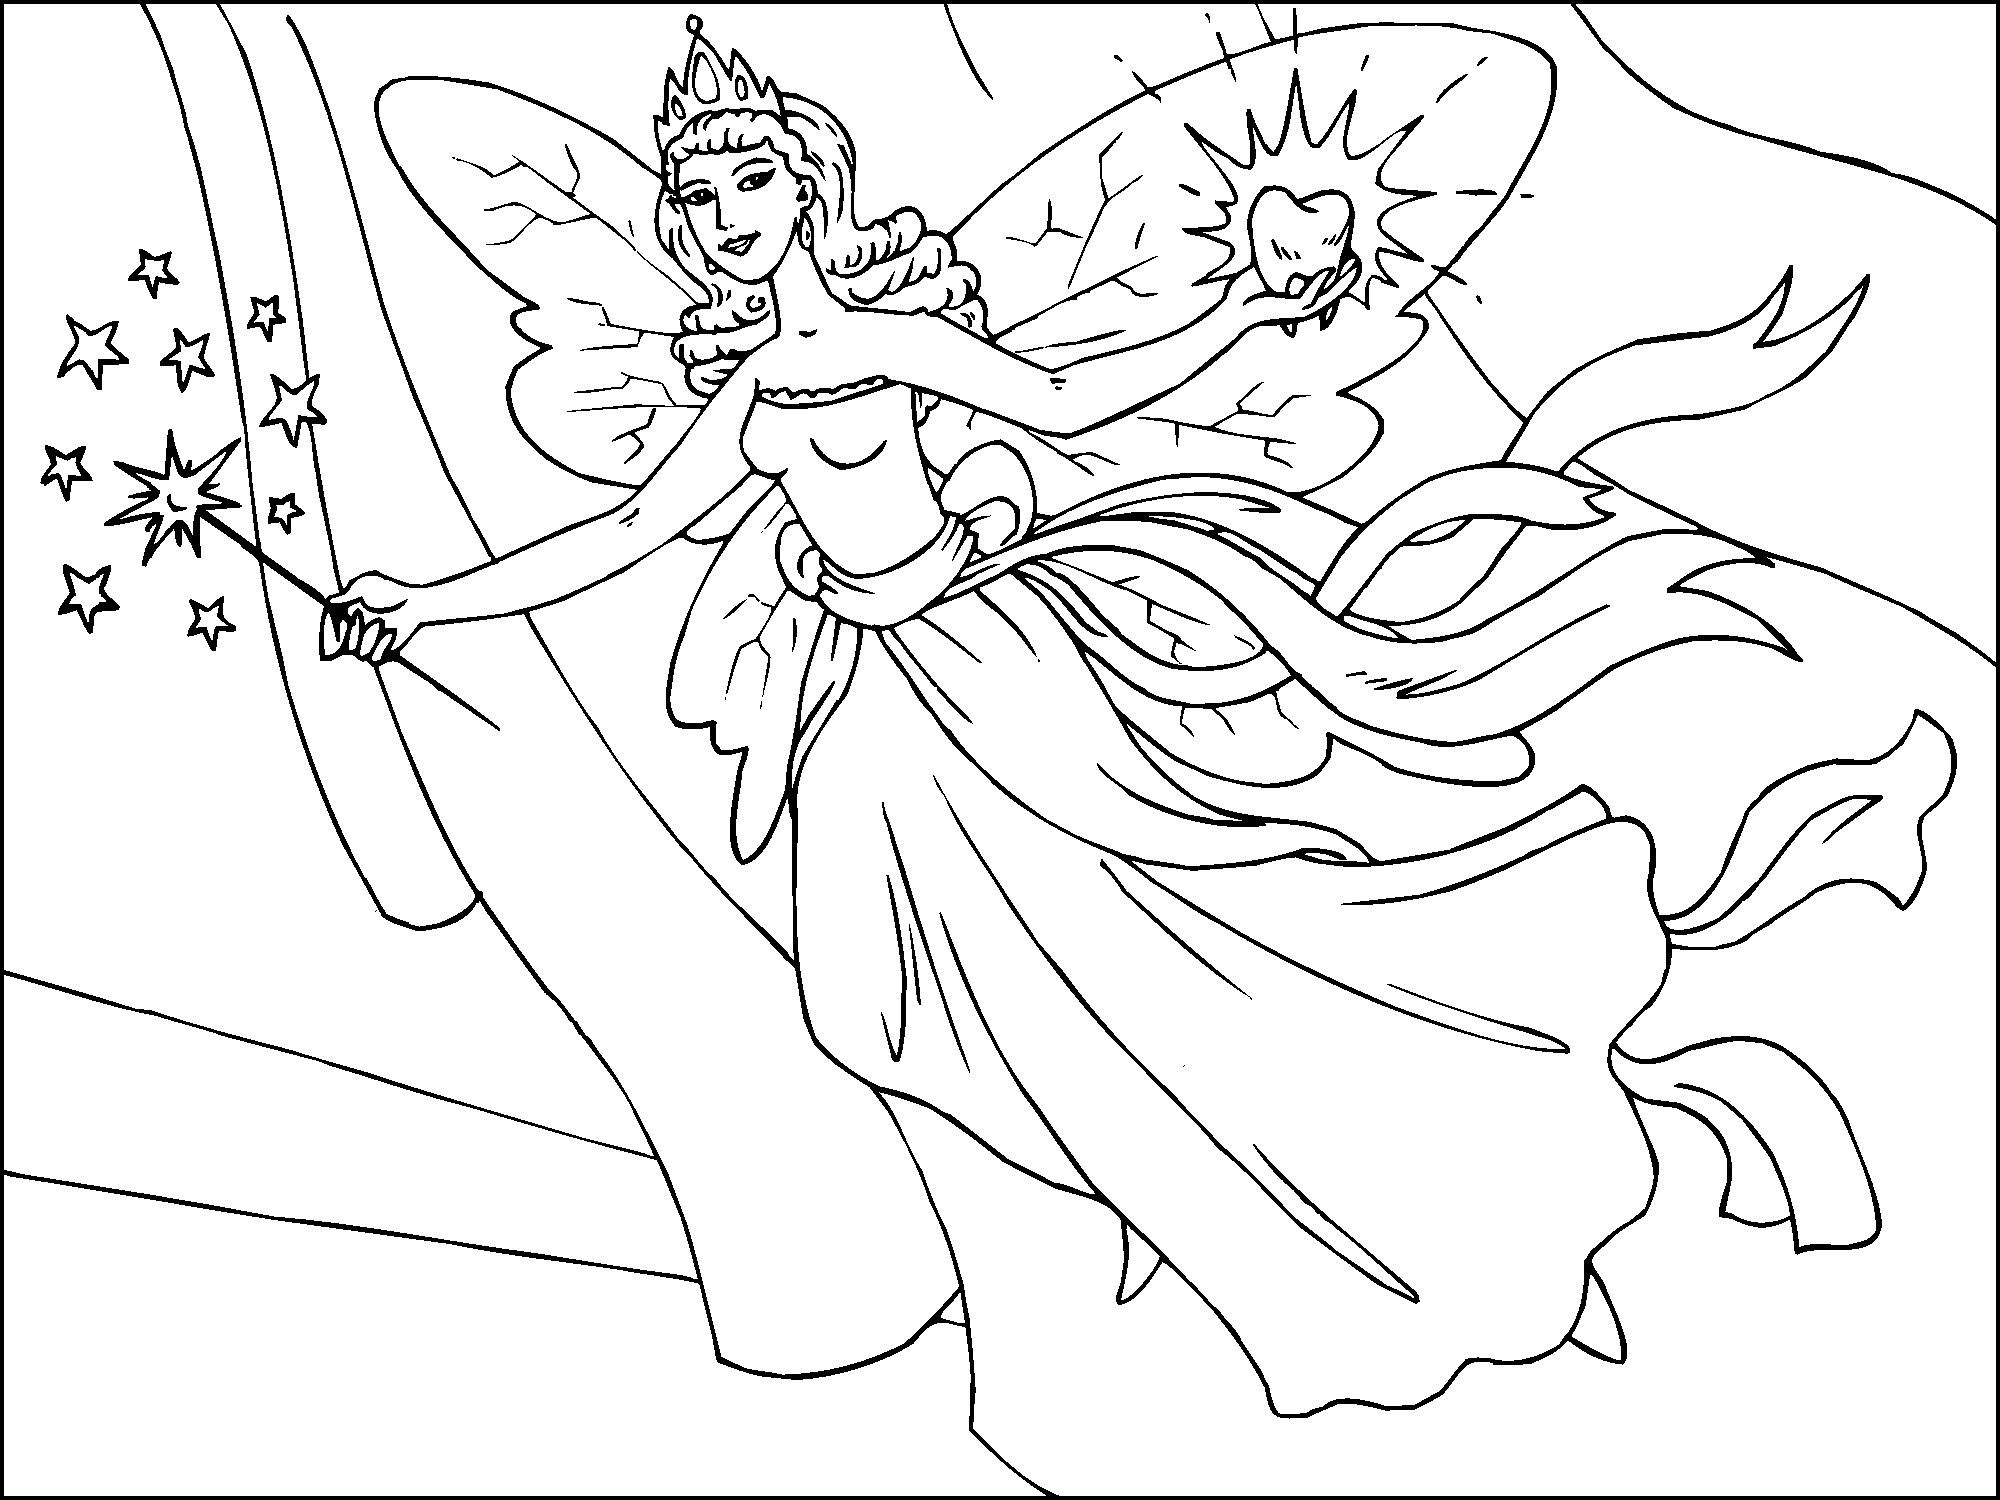 Free Printable Fairy Coloring Pages For Kids Fairy Coloring Pages Fairy Coloring Christmas Coloring Pages